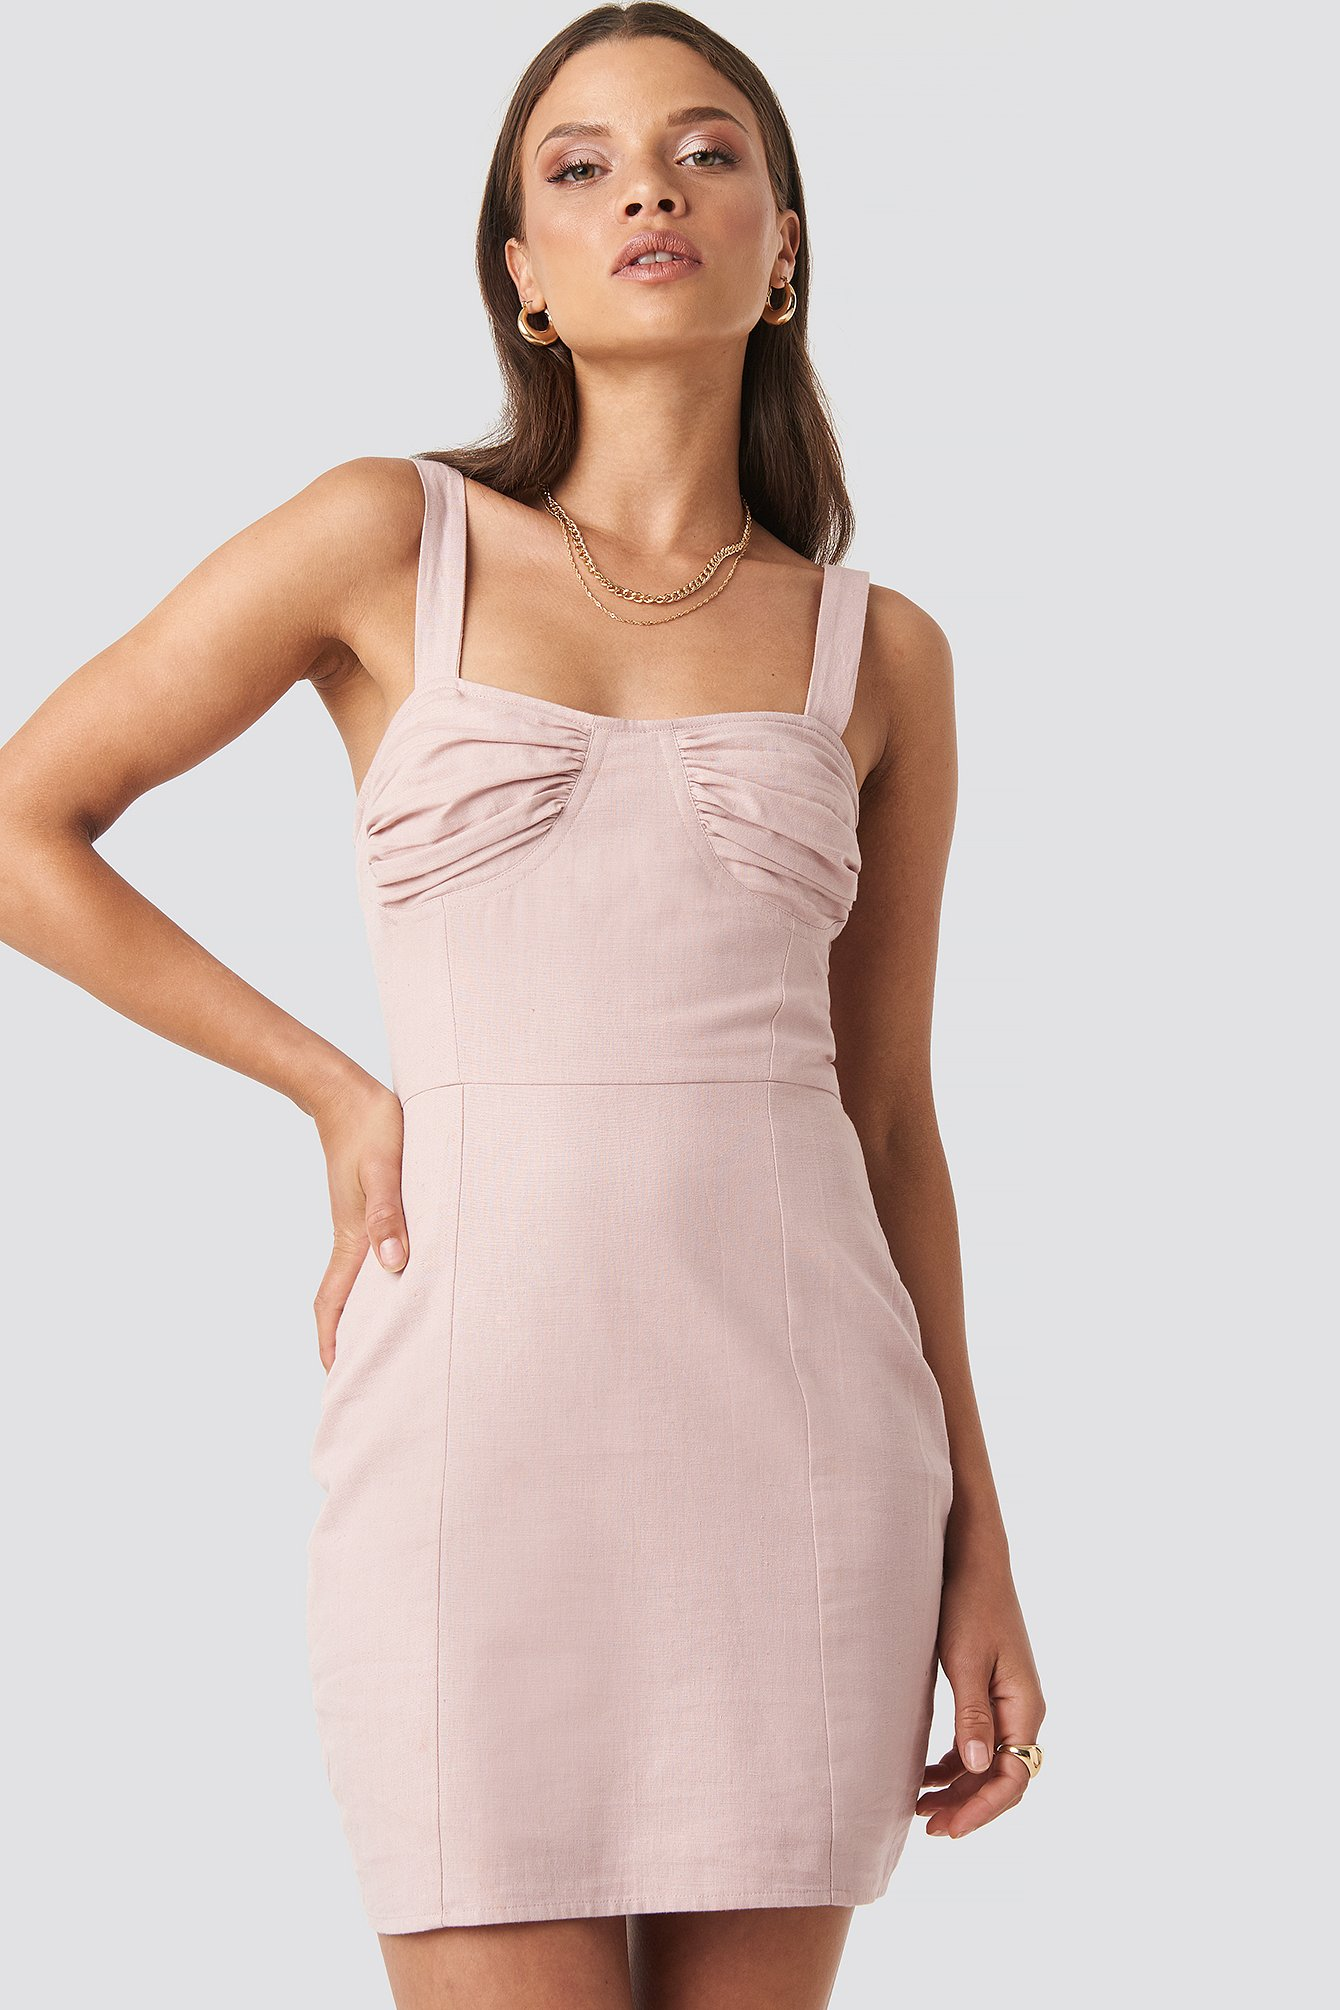 Jasmine Cup Dress Rosa by Xlethelabel